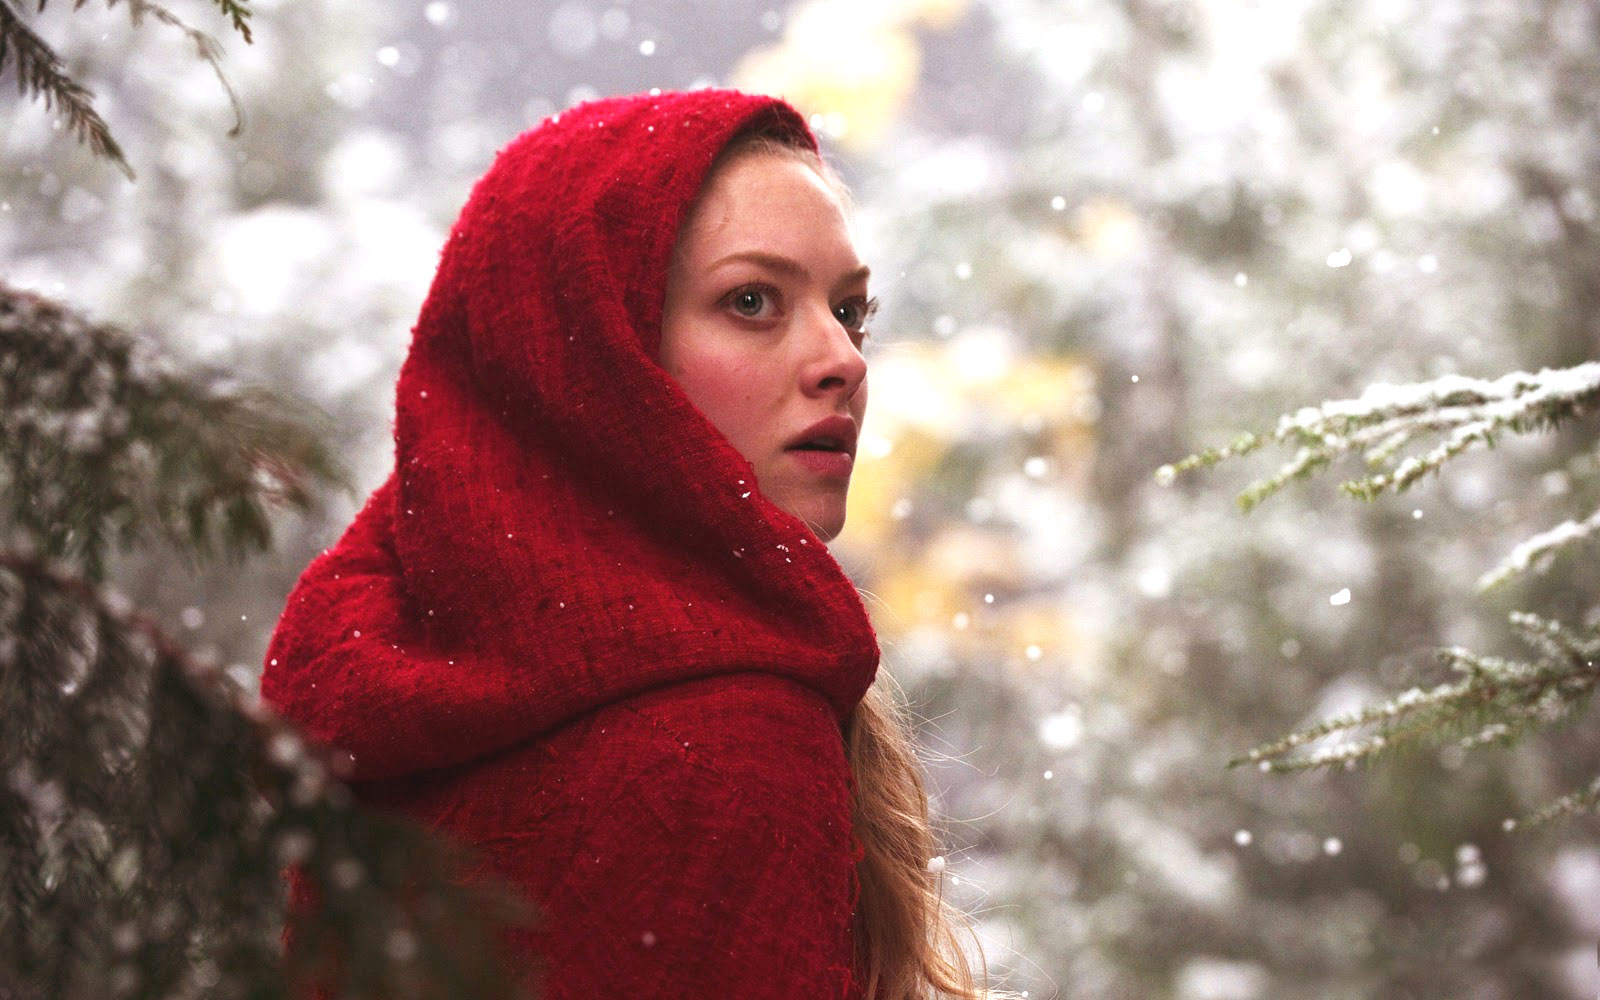 Amanda Seyfried in Red Riding Hood Movie